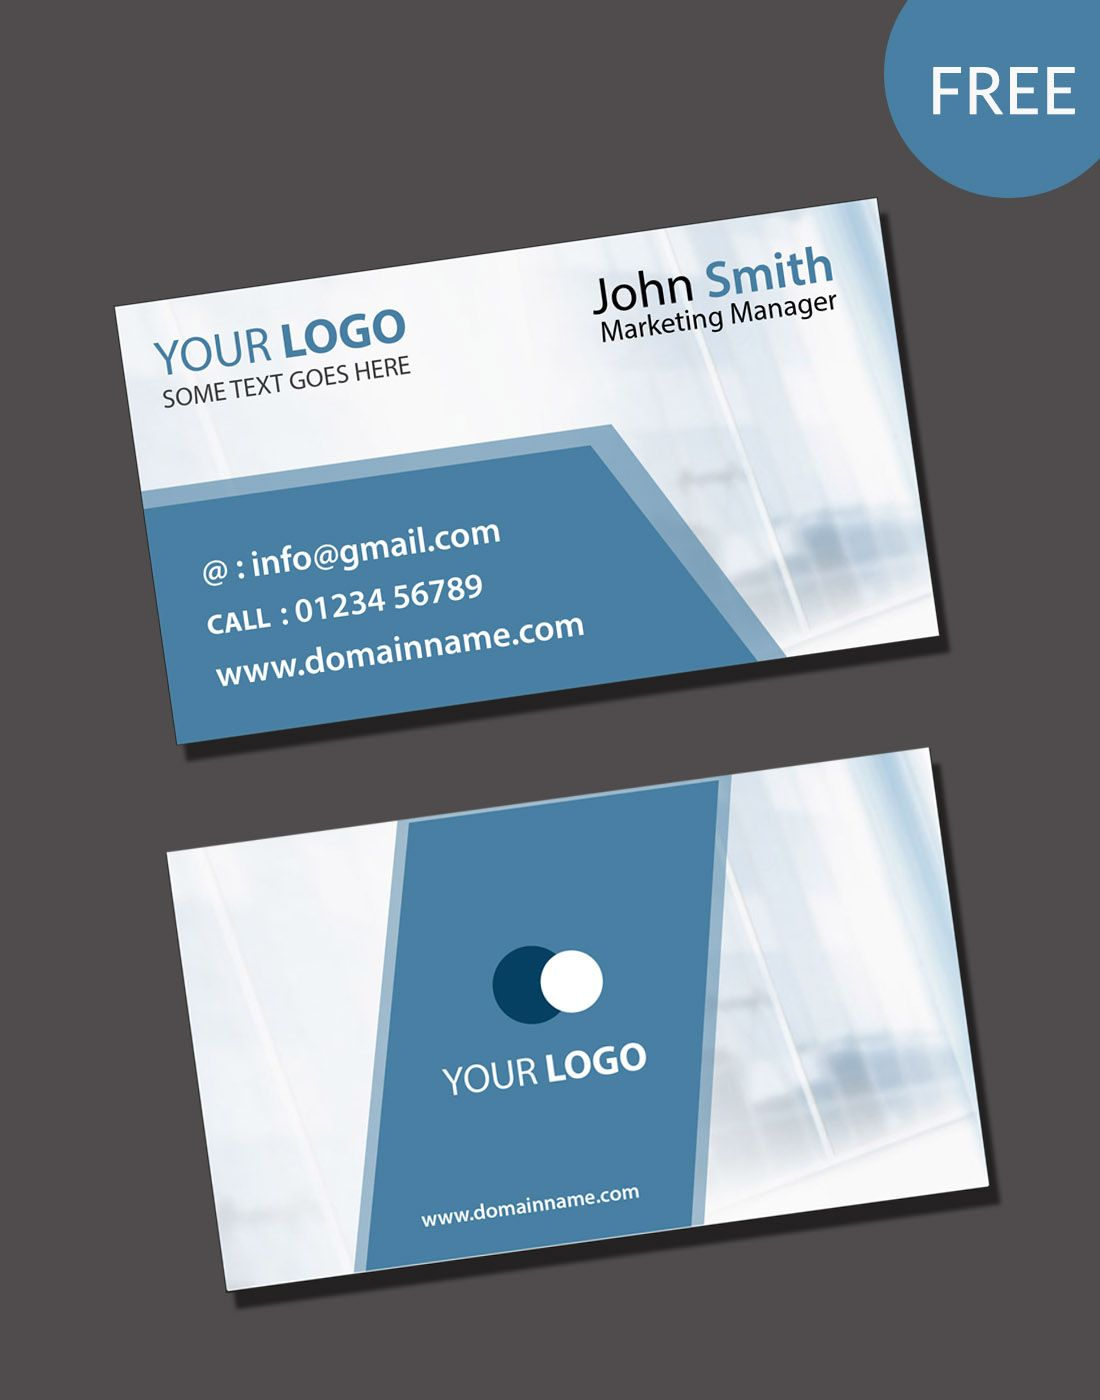 Visiting Card Psd Template Free Download With Regard To Visiting Card Psd Templ In 2020 Business Card Template Psd Visiting Card Templates Free Business Card Templates